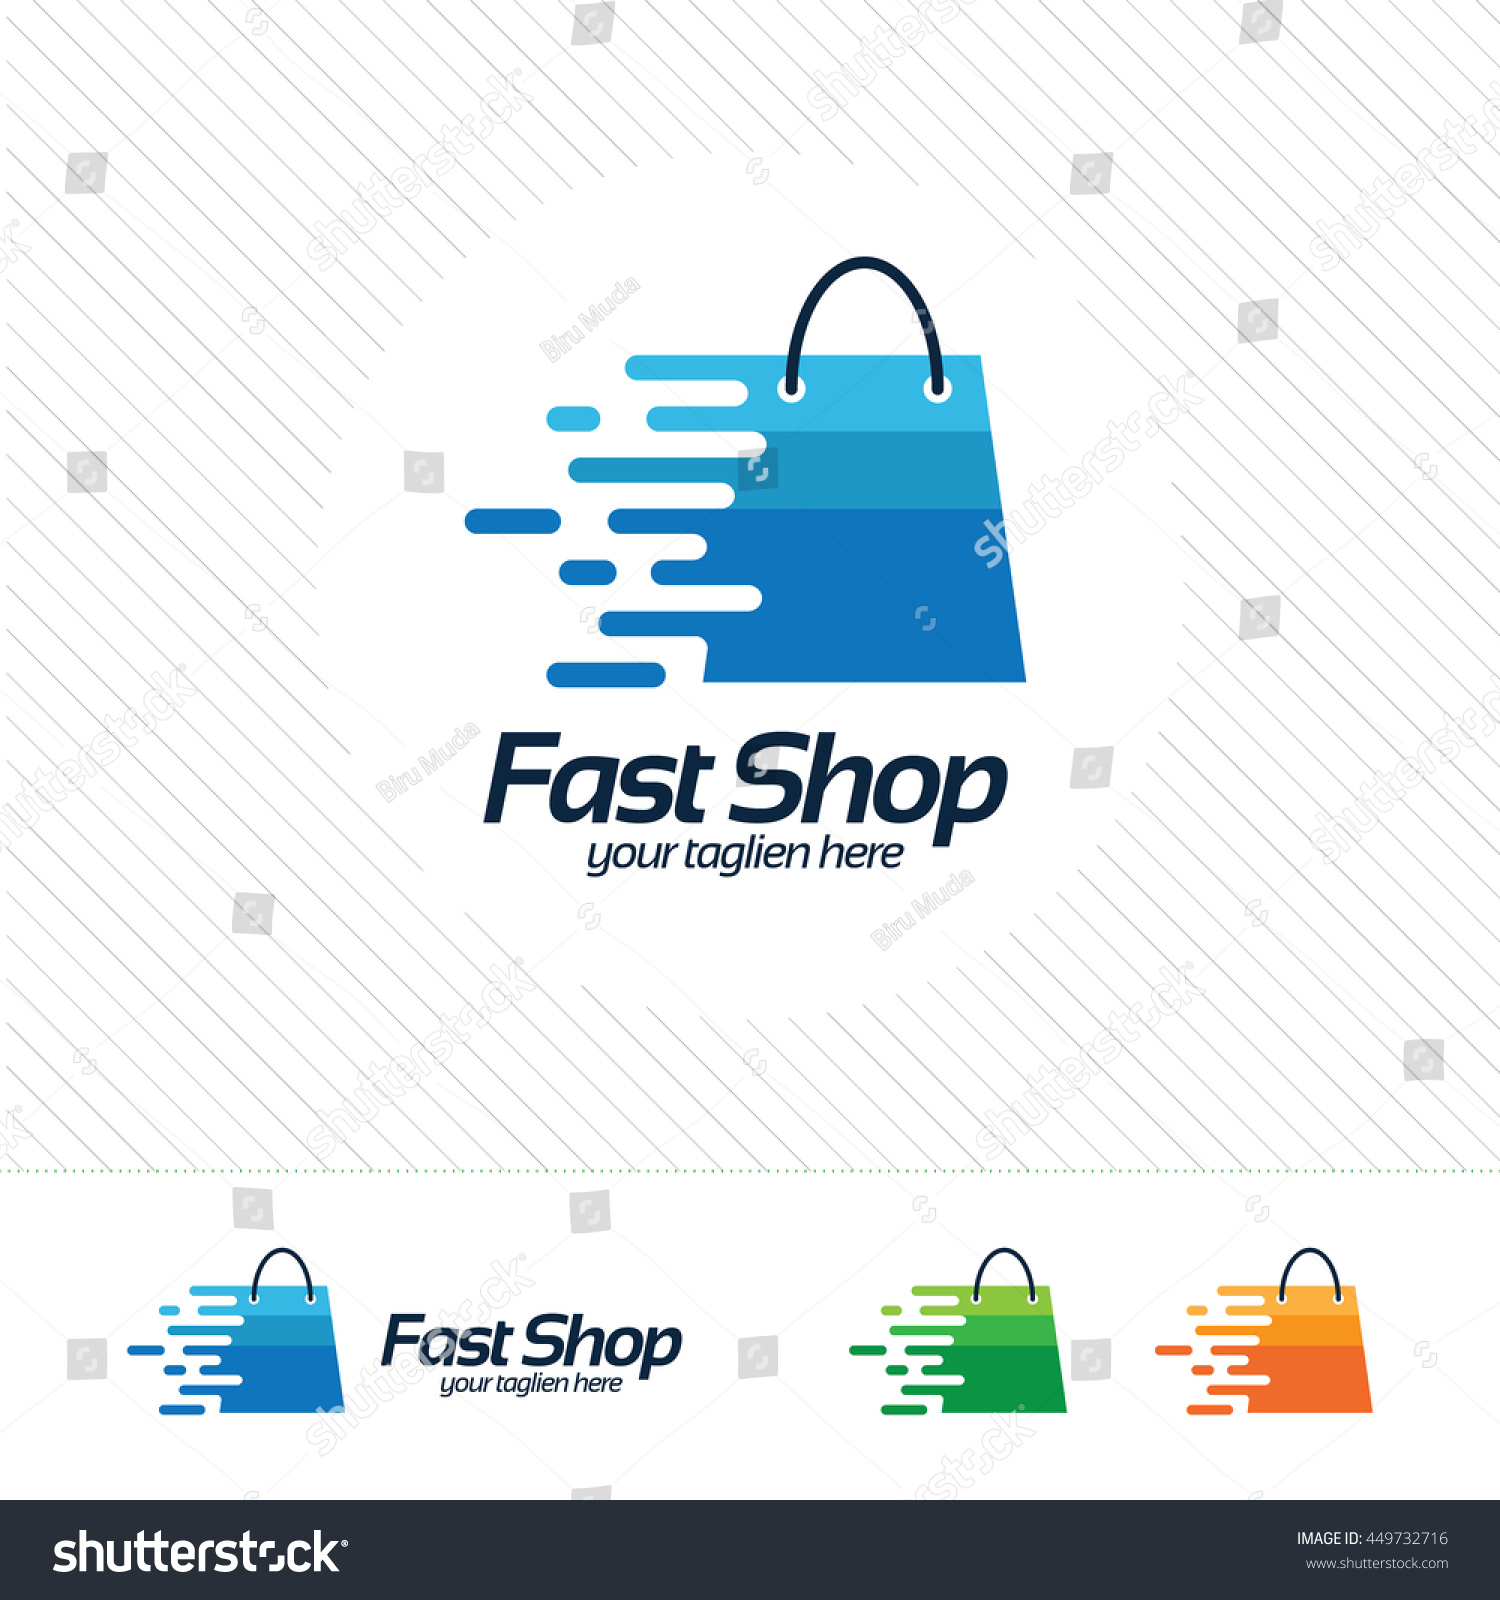 Shop online design shop online with shop online design for Good sites for online shopping